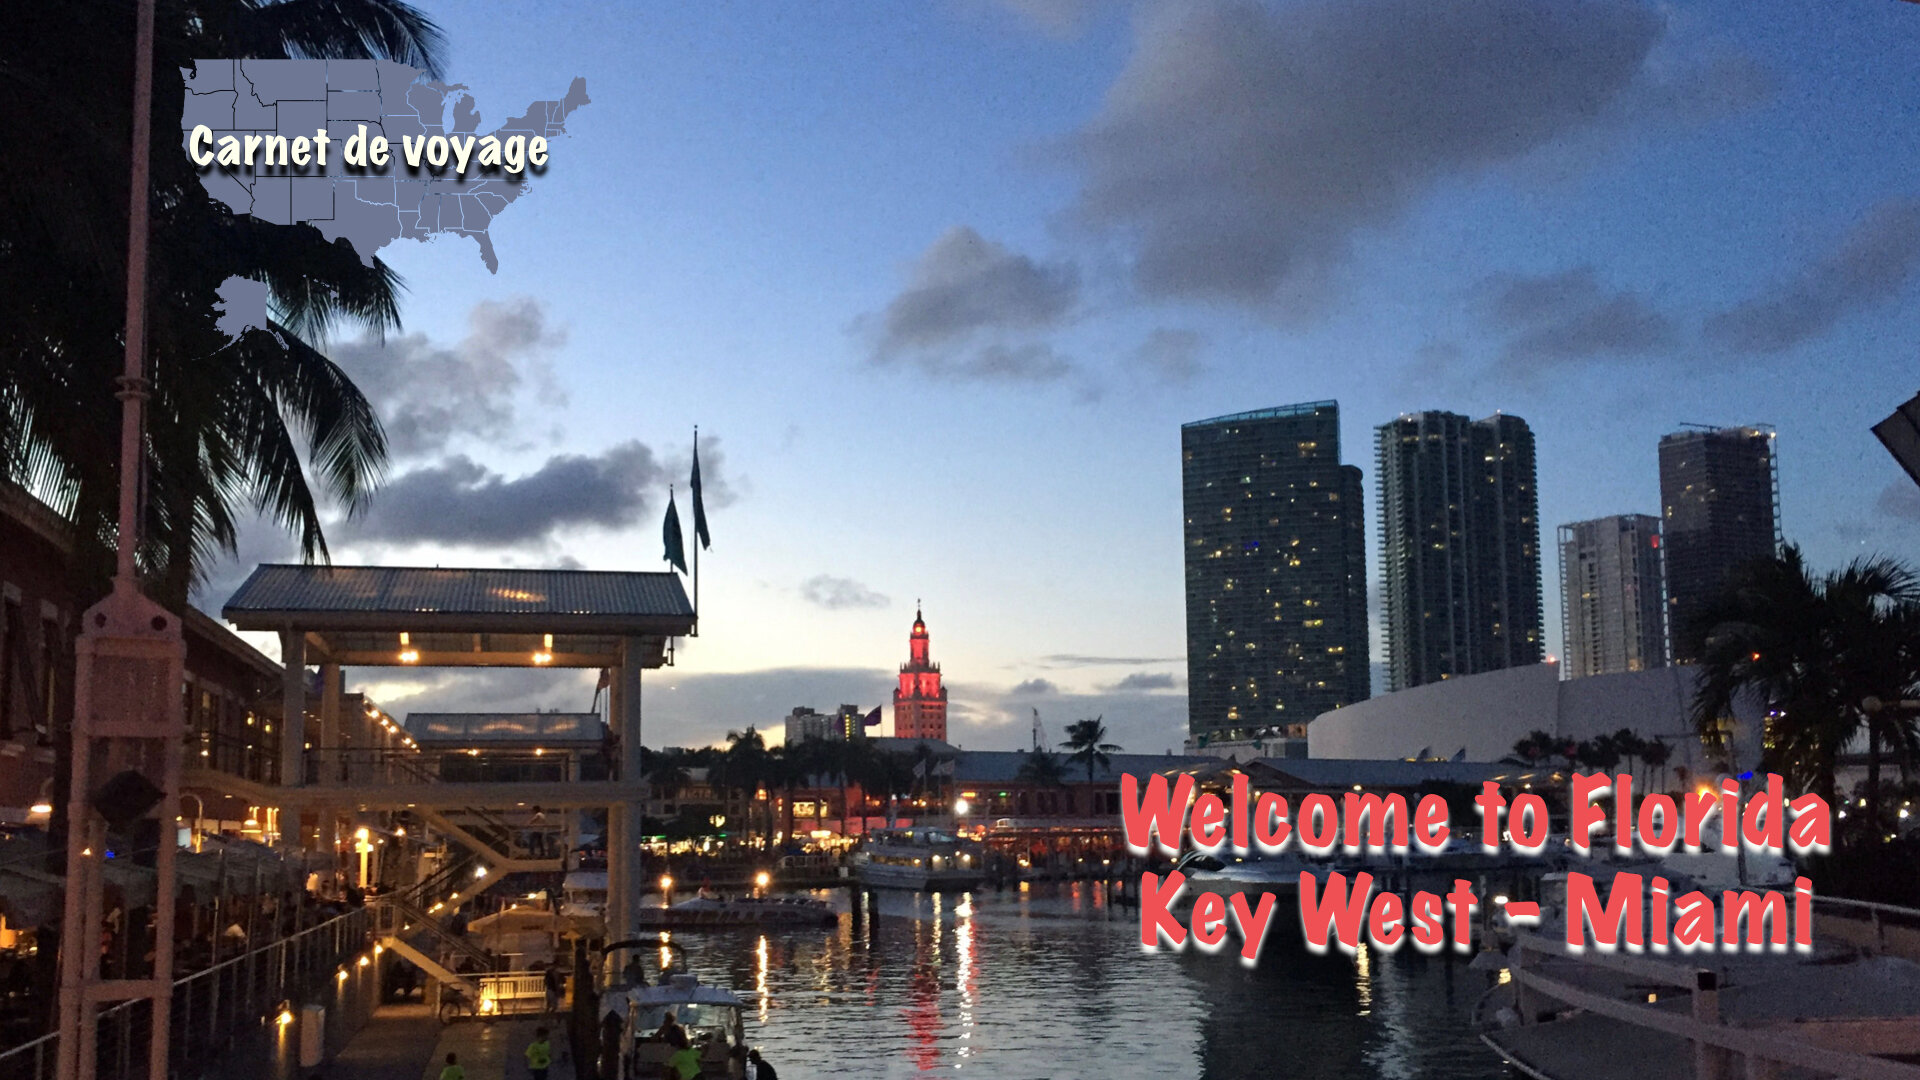 [Carnet de voyage] Welcome to Florida - Key West - Miami